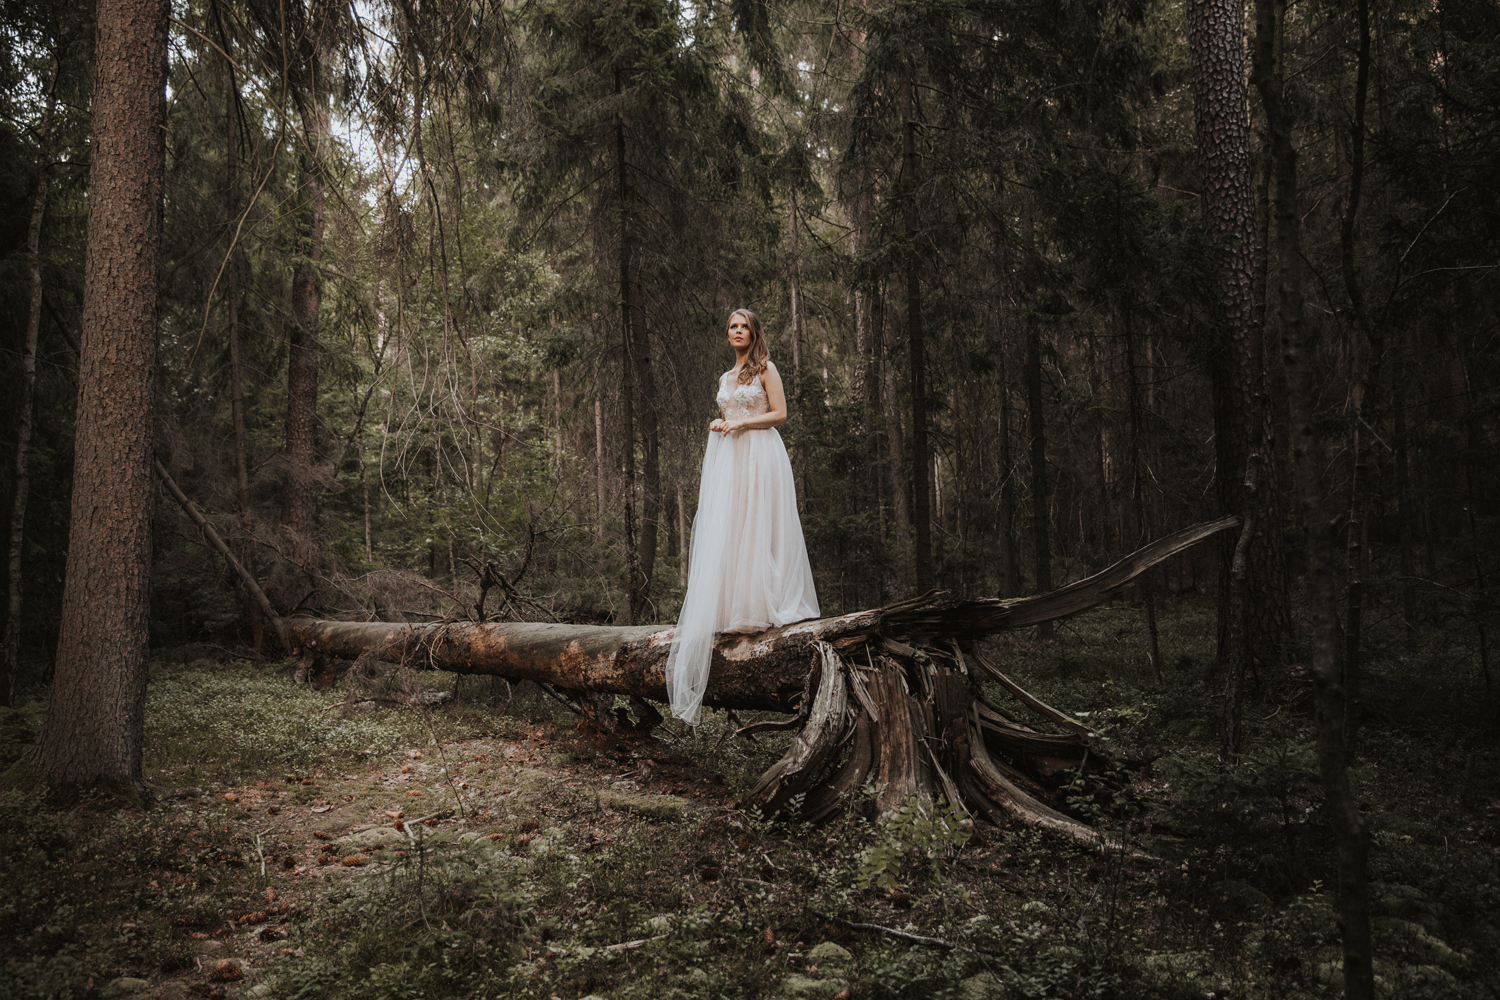 weddingphotograher_klaudia_rafal_nationalpark_509.jpg